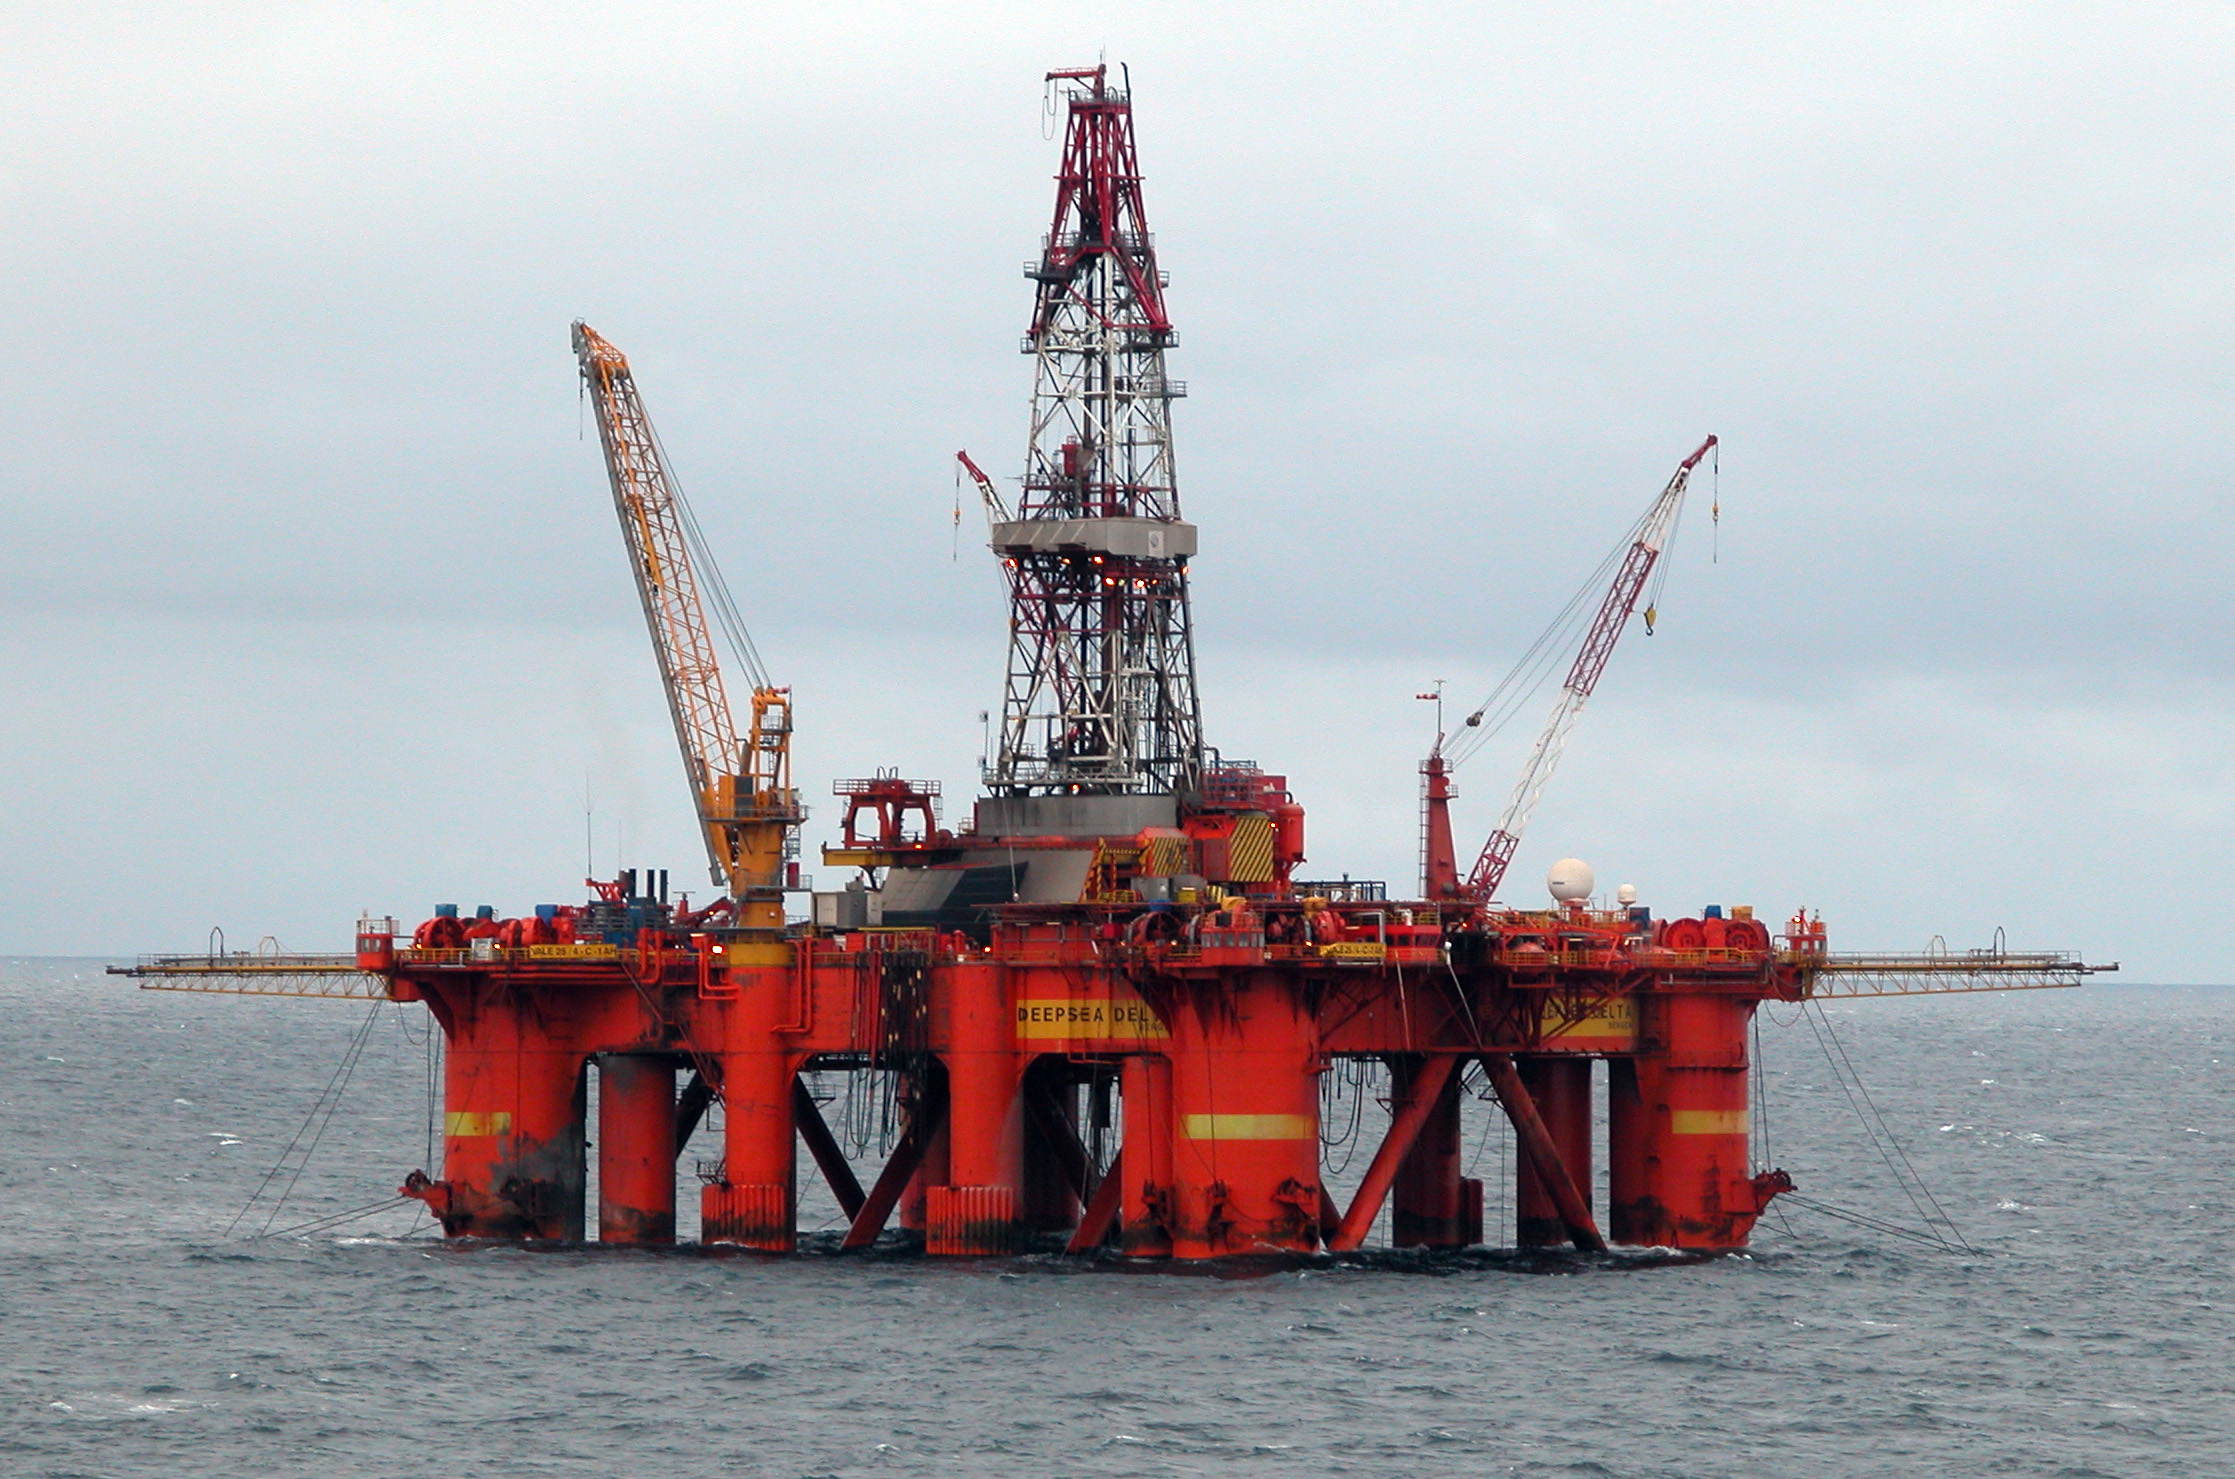 File:Oil platform in the North Sea.jpg - Wikimedia Commons